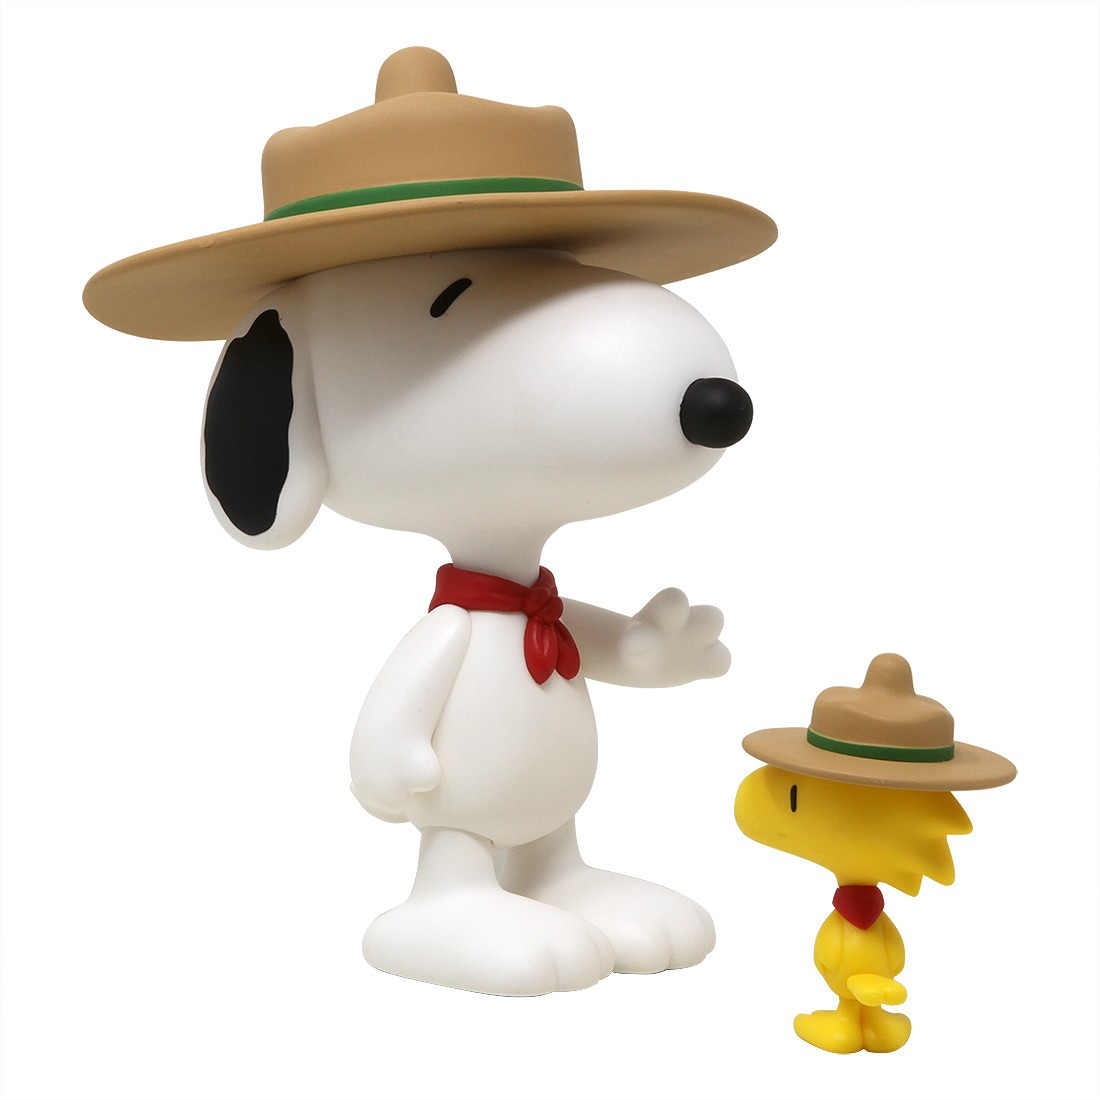 Medicom Peanuts VCD Beagle Scout Snoopy and Woodstock (white / yellow)